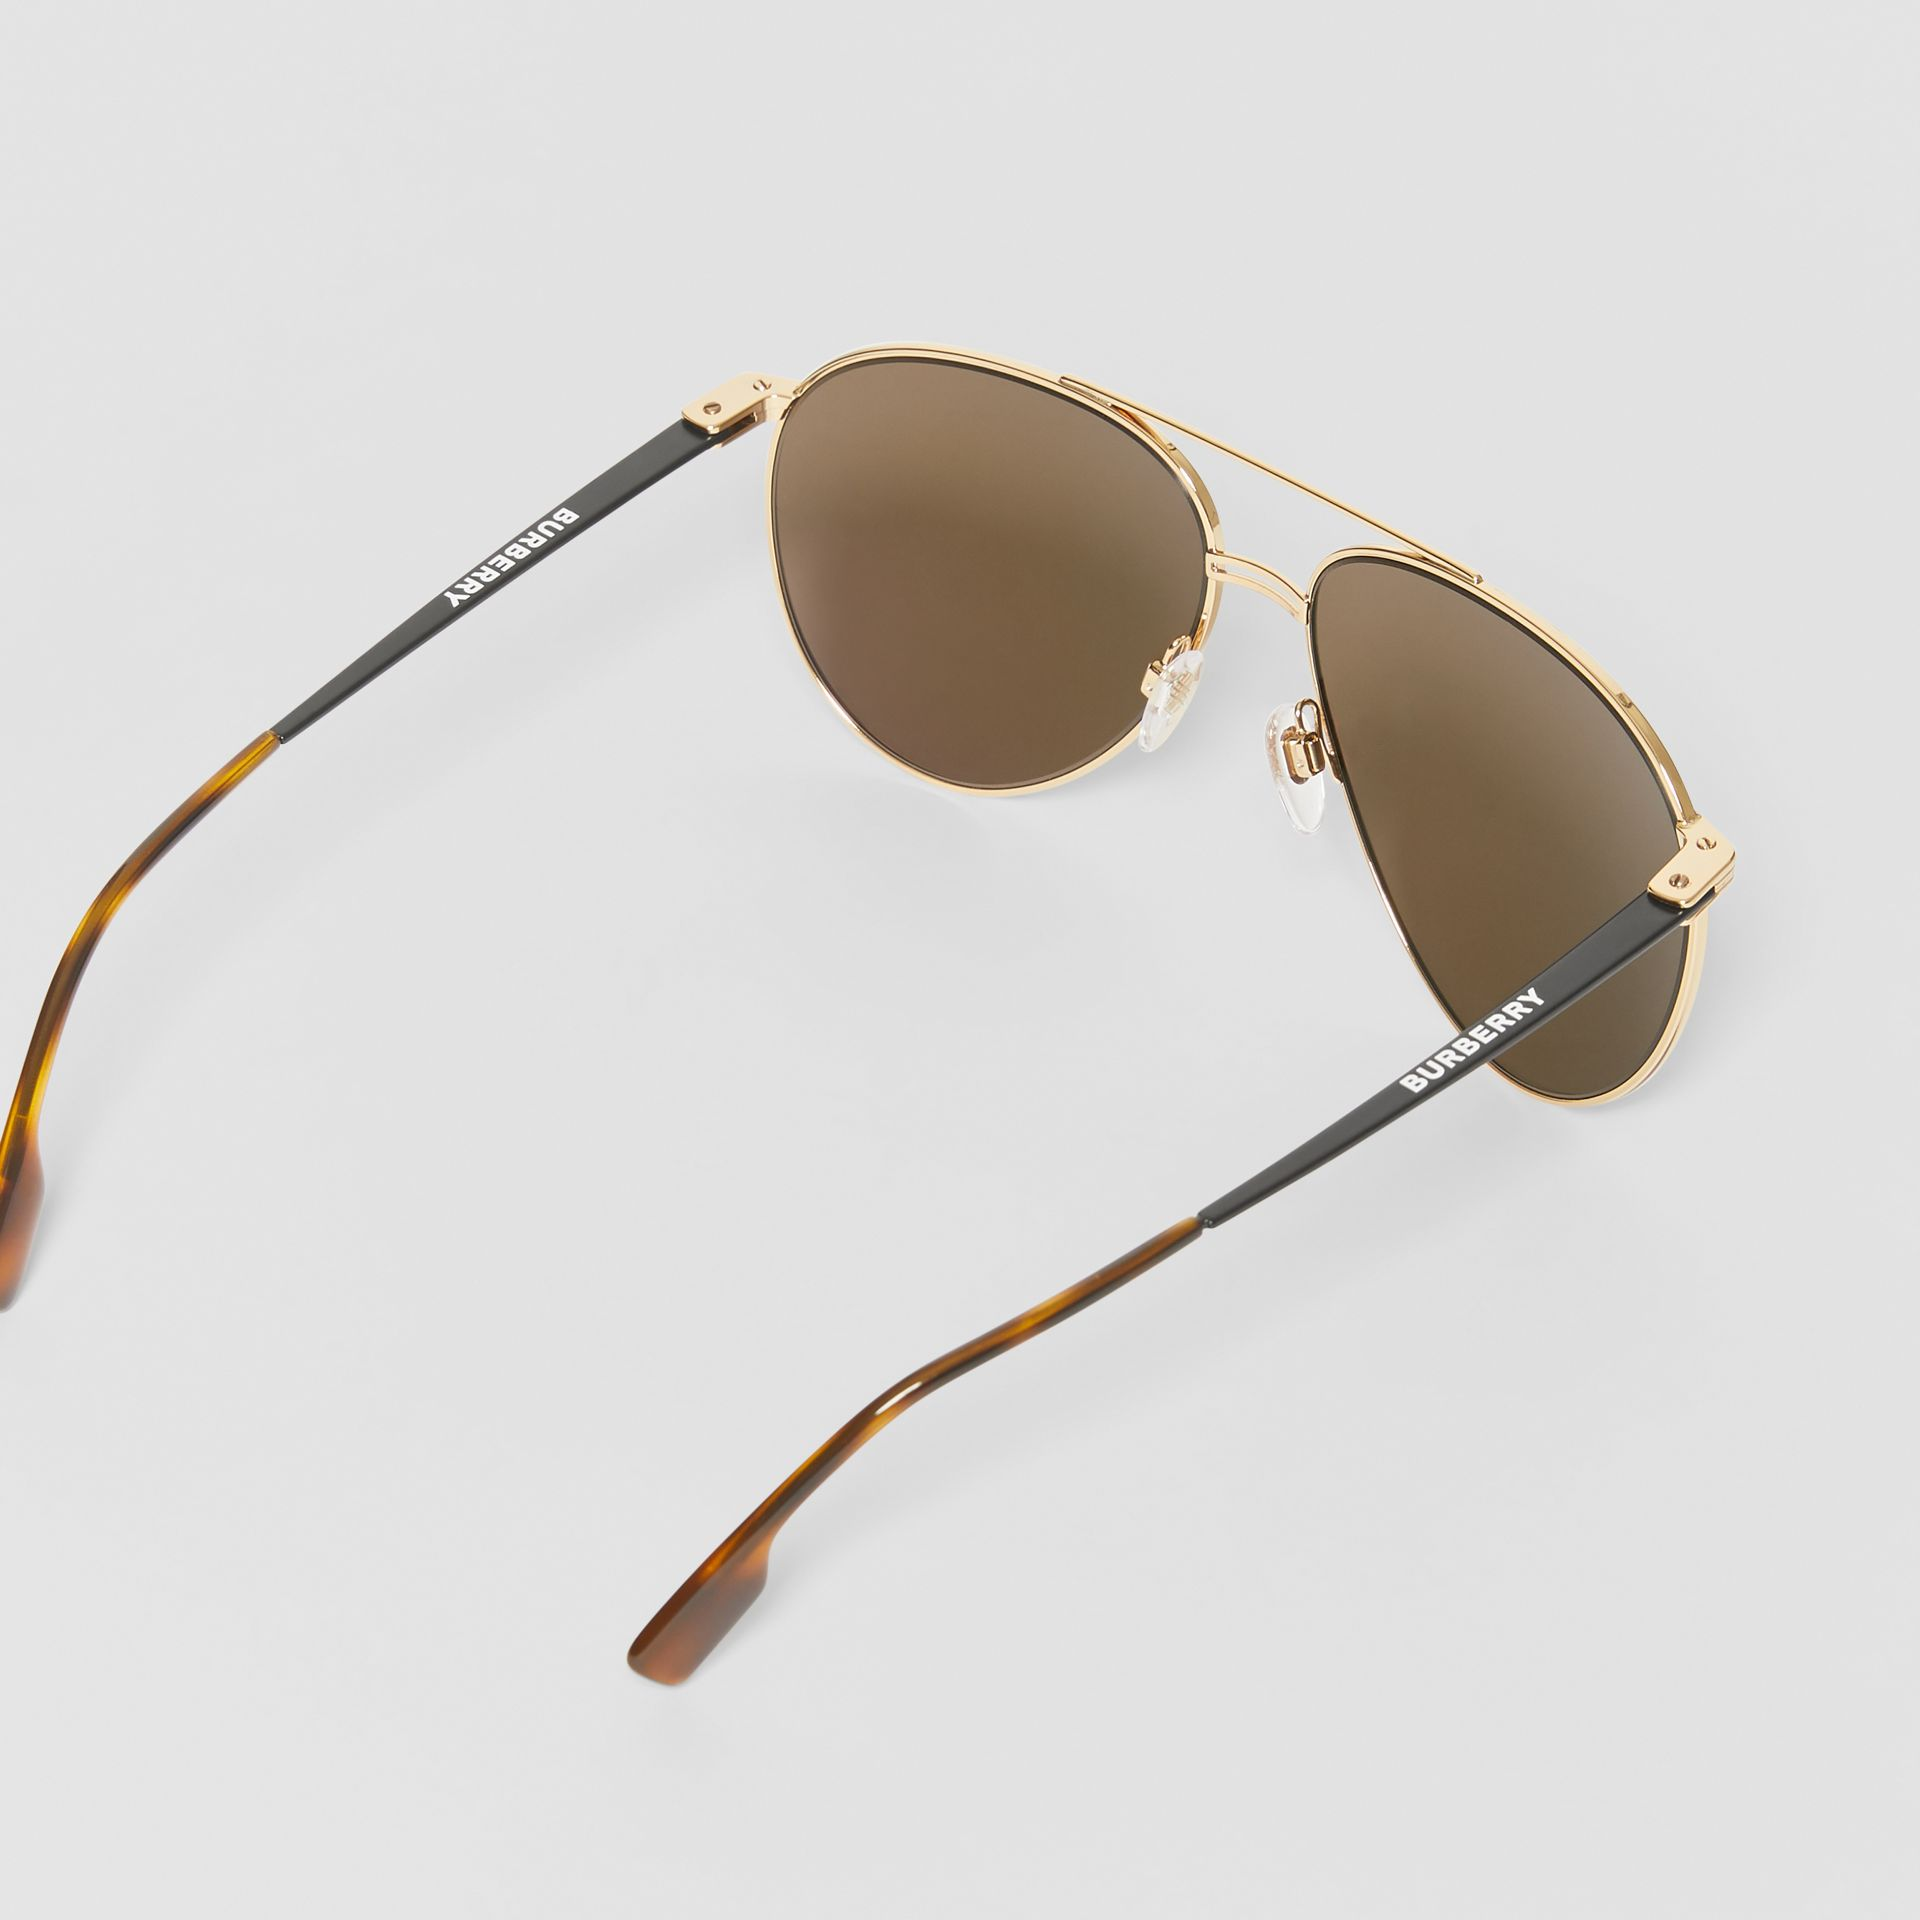 Top Bar Detail Pilot Sunglasses in Tortoiseshell - Men | Burberry Australia - gallery image 4